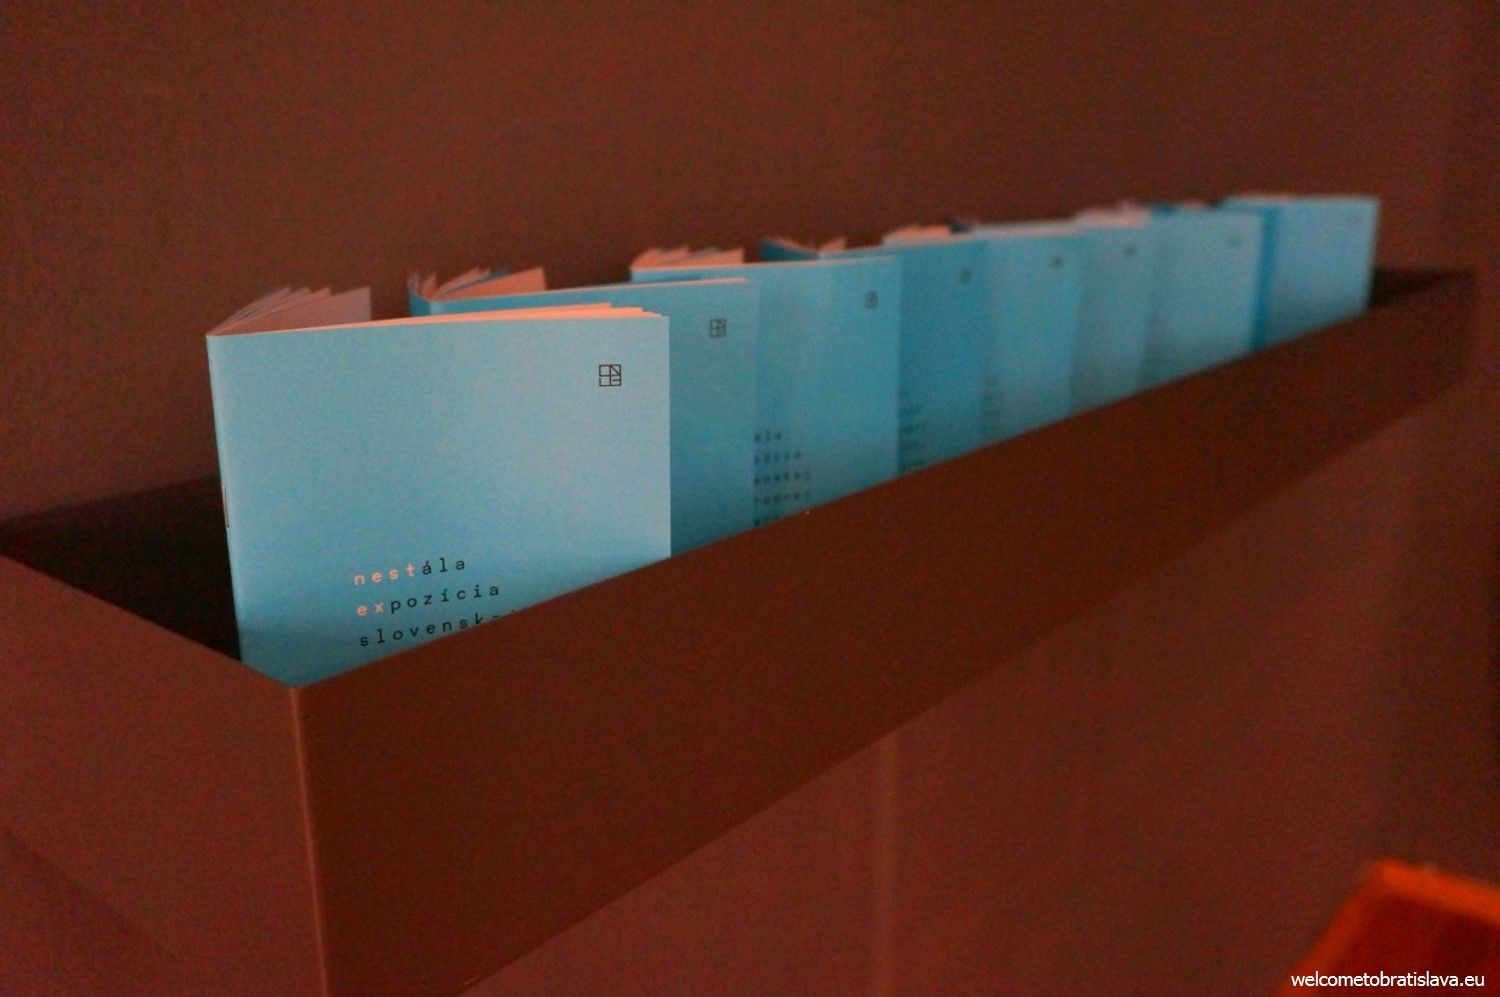 The blue booklets with objects' description